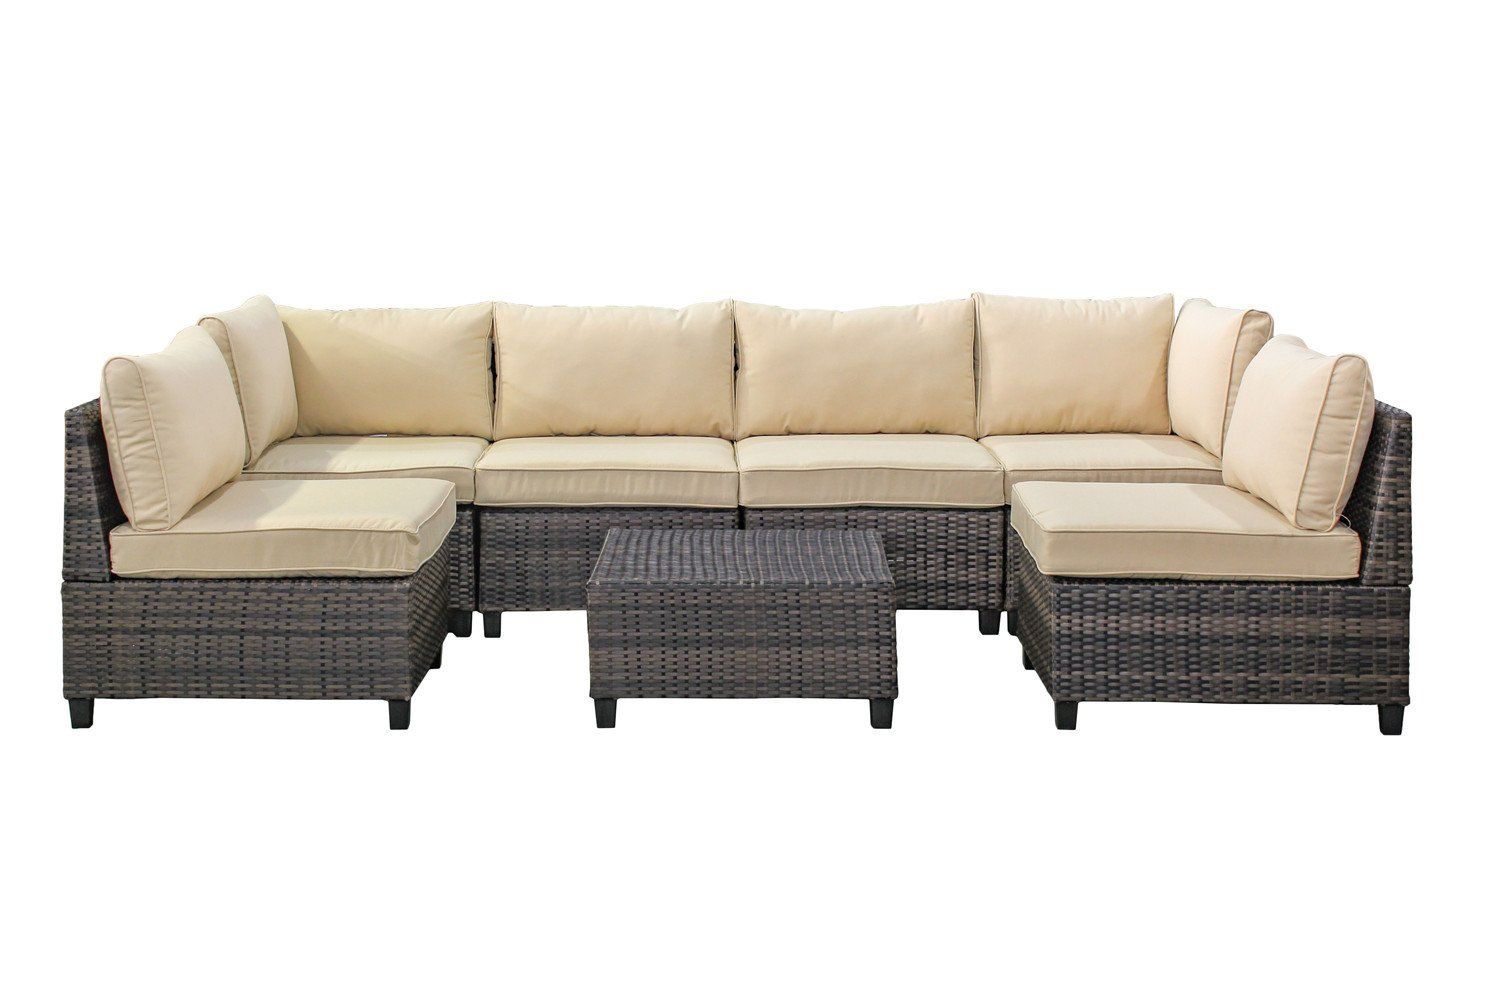 Tampa 7 Piece Outdoor Rattan Wicker Sofa Sectional Sets Perfect